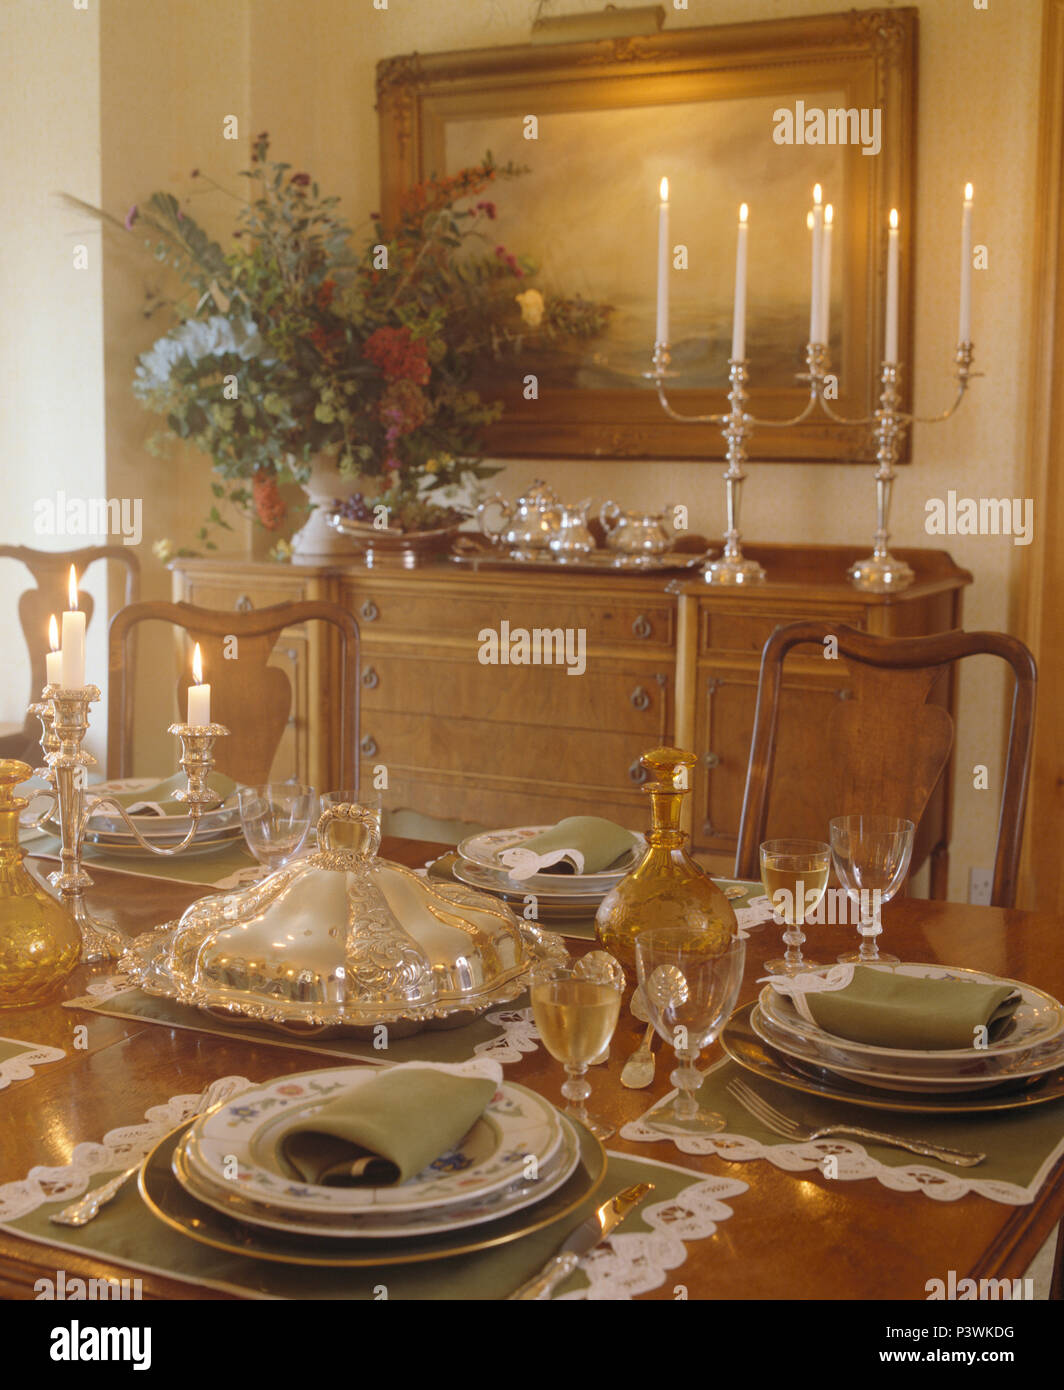 Antique Glassware And Silver Tureen On Table Set For Lunch In Country Dining Room With Silver Candlesticks On Sideboard